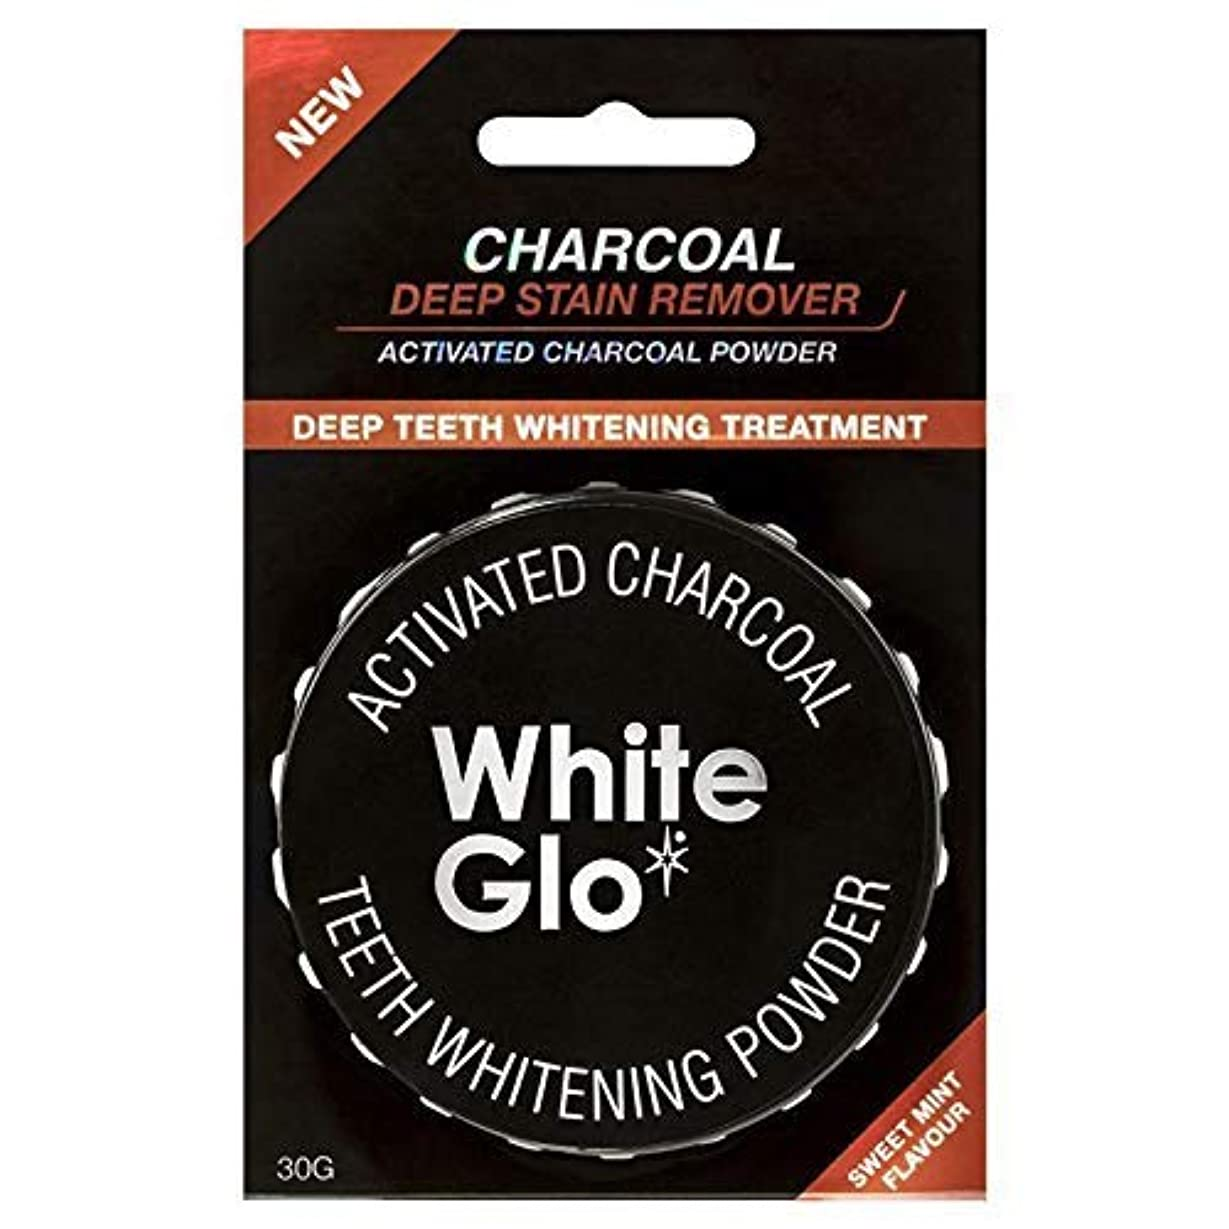 下に原告ブースTeeth Whitening Systems White Glo Activated Charcoal Teeth Whitening Powder 30g Australia / システムを白くする歯を白くする歯の粉...